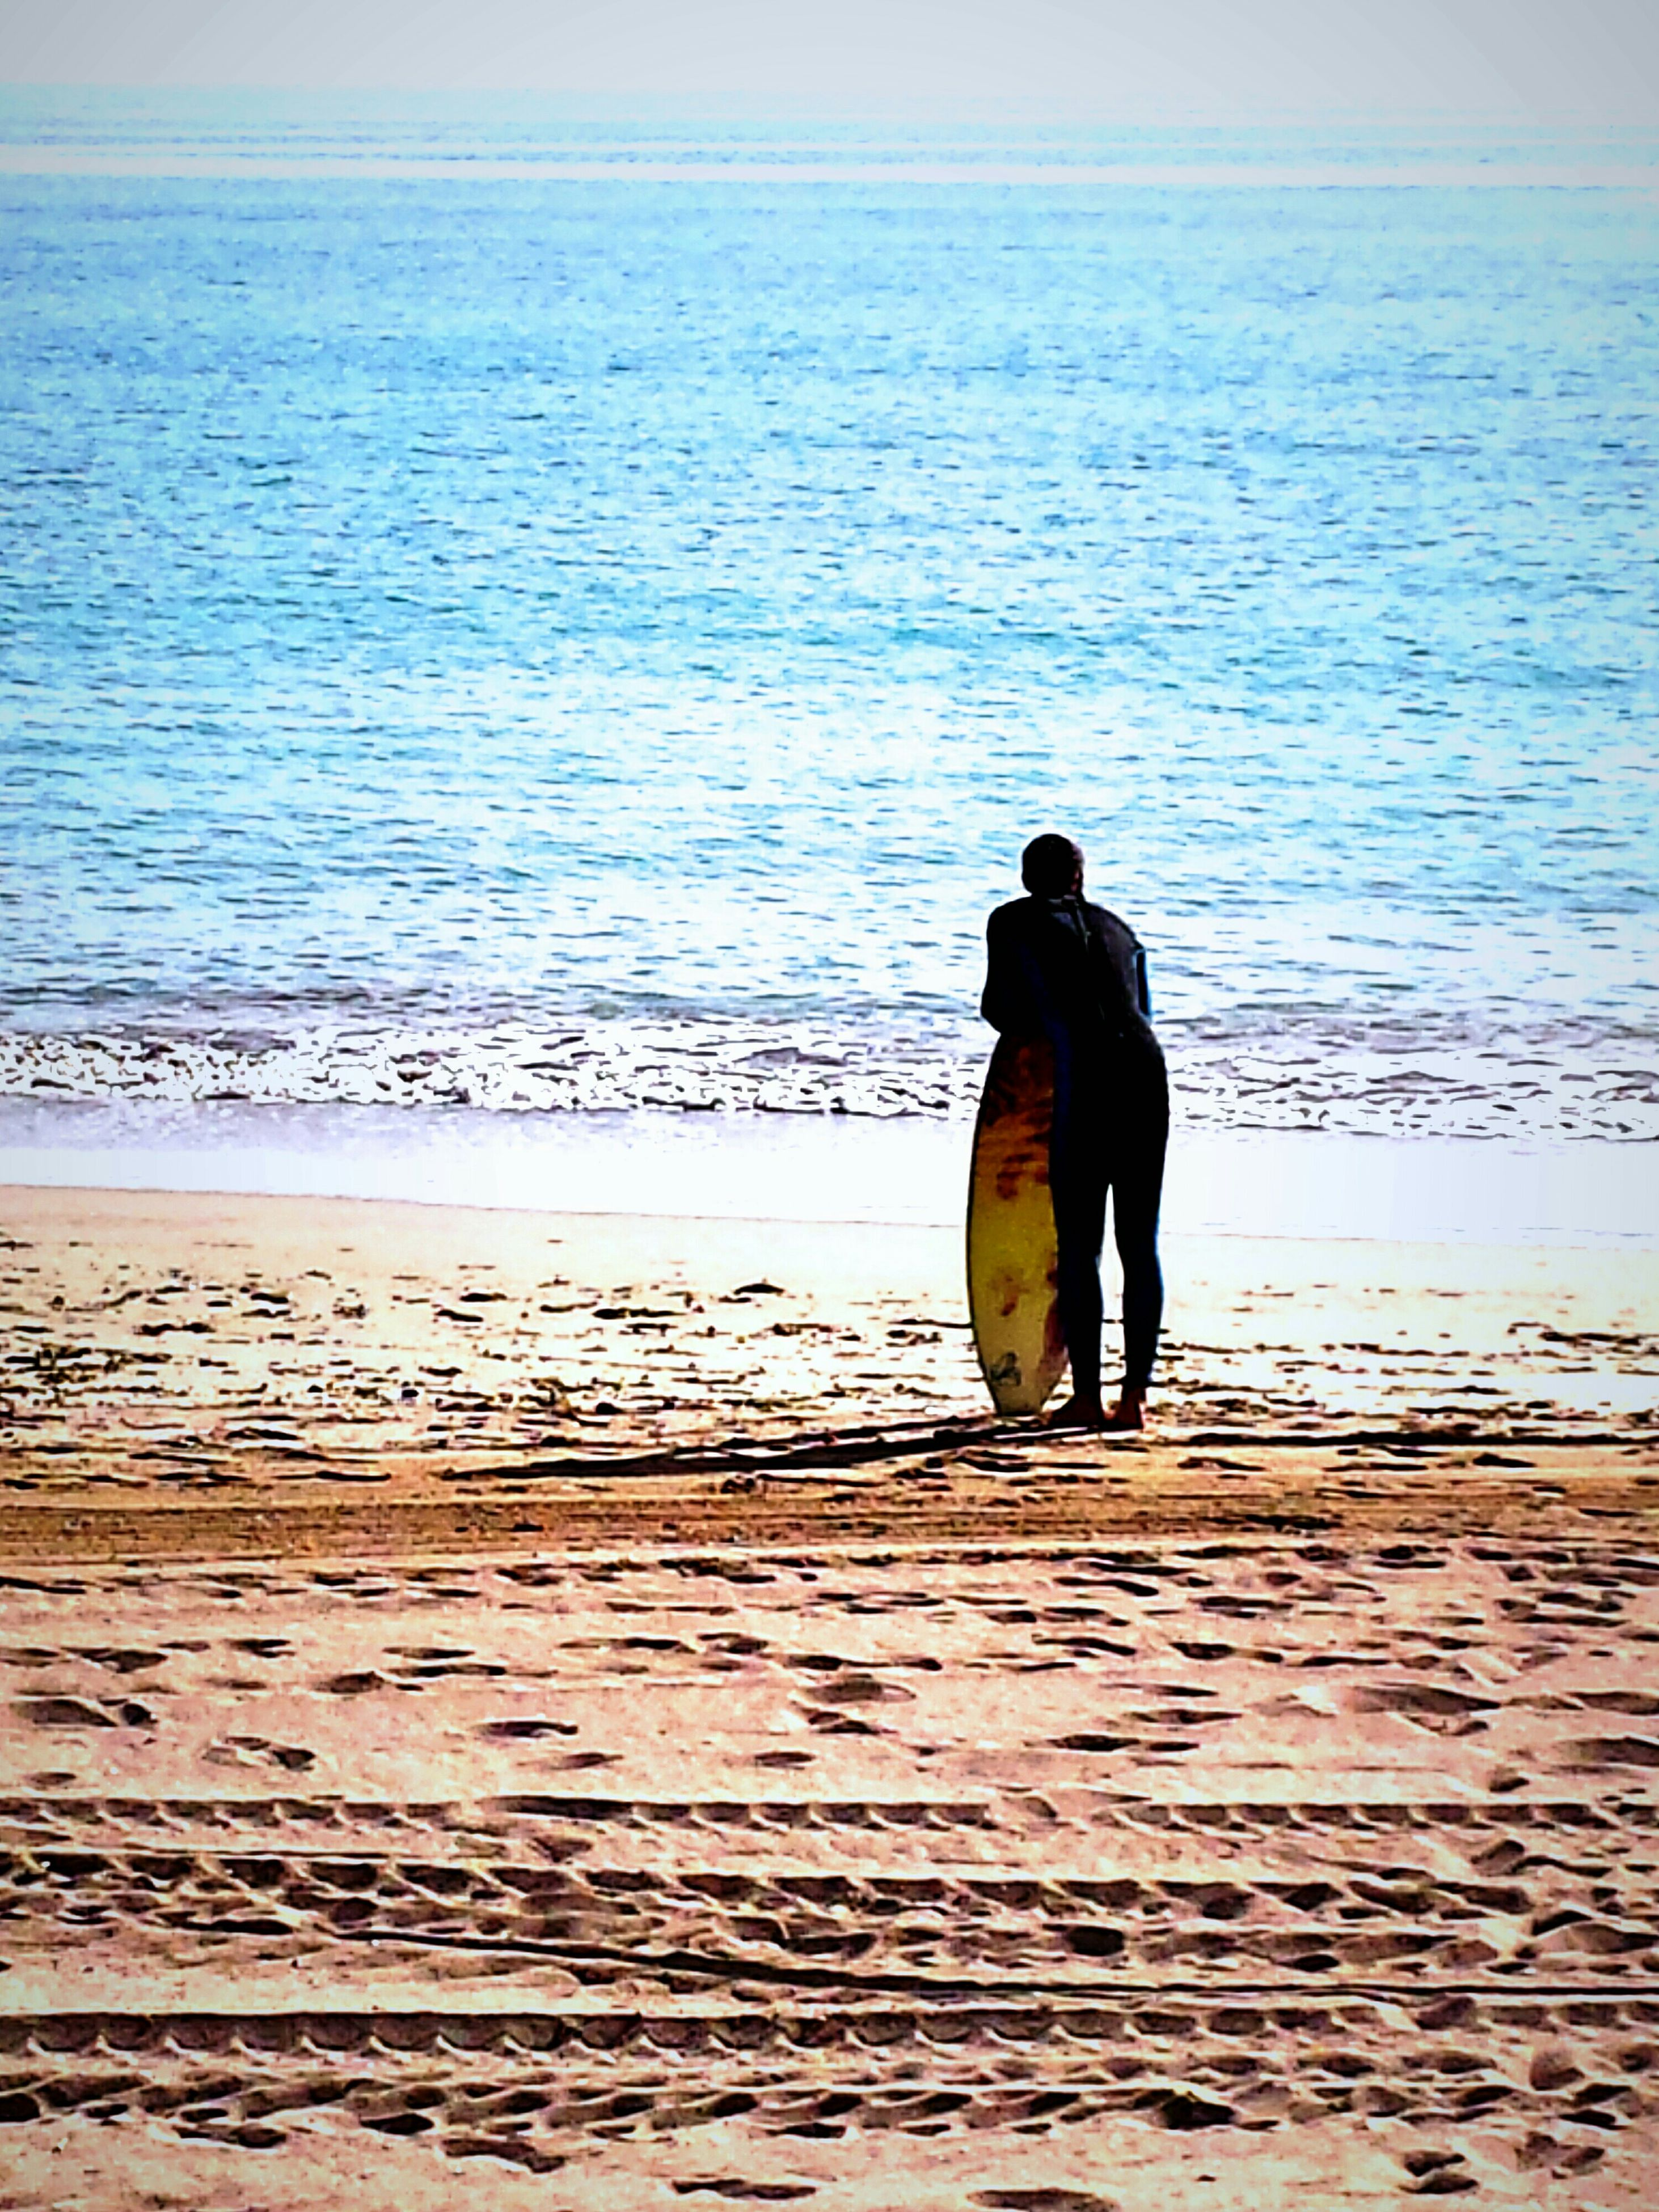 water, sea, dog, rear view, full length, pets, beach, domestic animals, men, lifestyles, one animal, walking, horizon over water, leisure activity, shore, standing, animal themes, tranquil scene